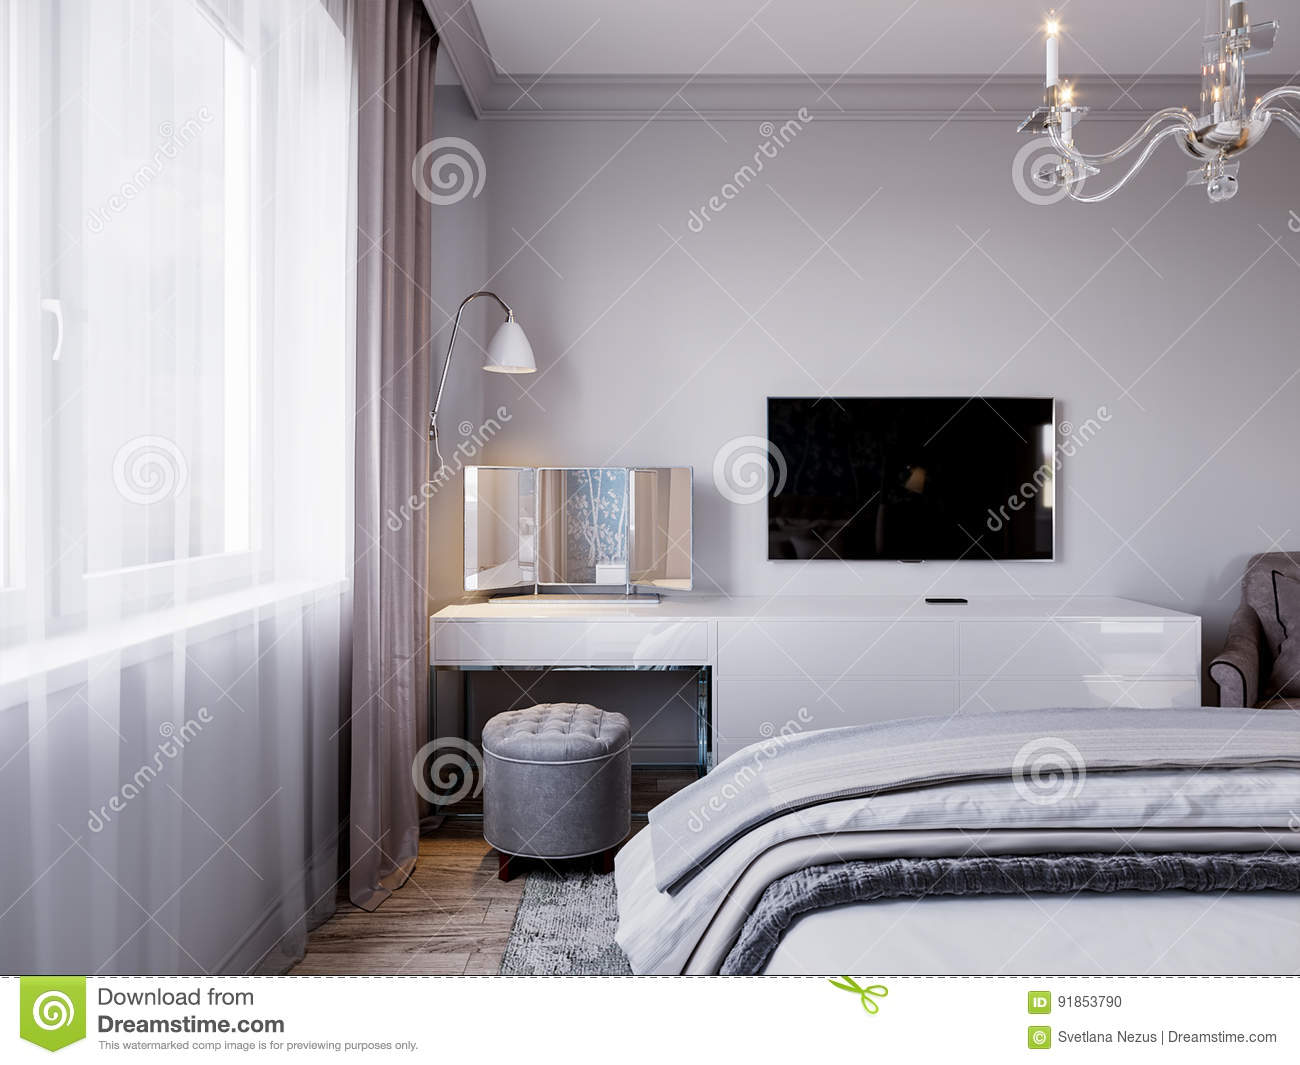 Modern Bedroom Interior Design With Classic Elements Stock